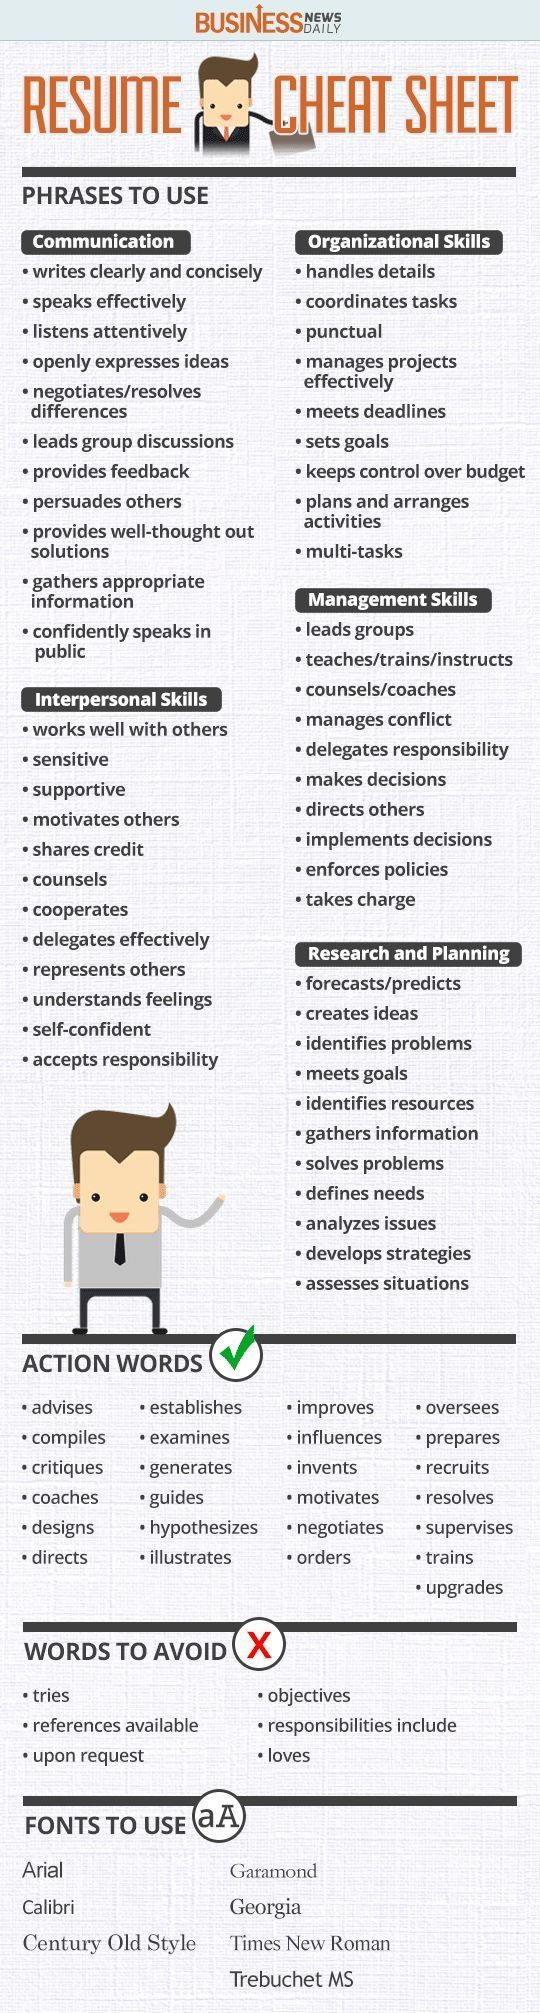 95 best Resume example images on Pinterest | Career advice, Job ...